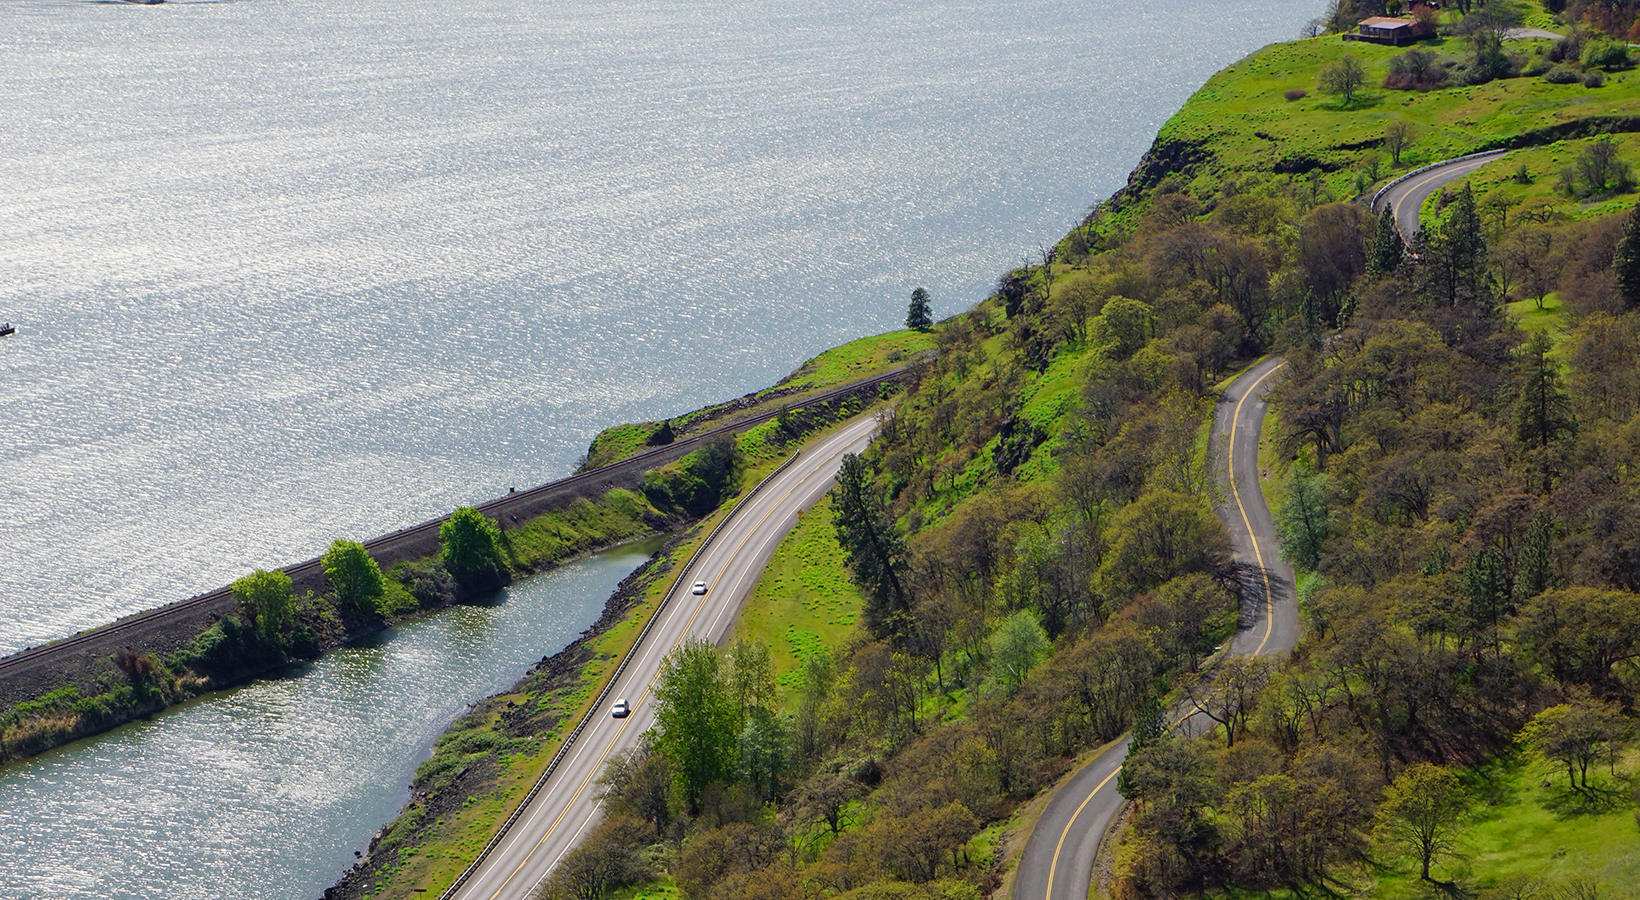 A view of Hwy 14 and a winding secondary road that's very popular for taking scenic drives